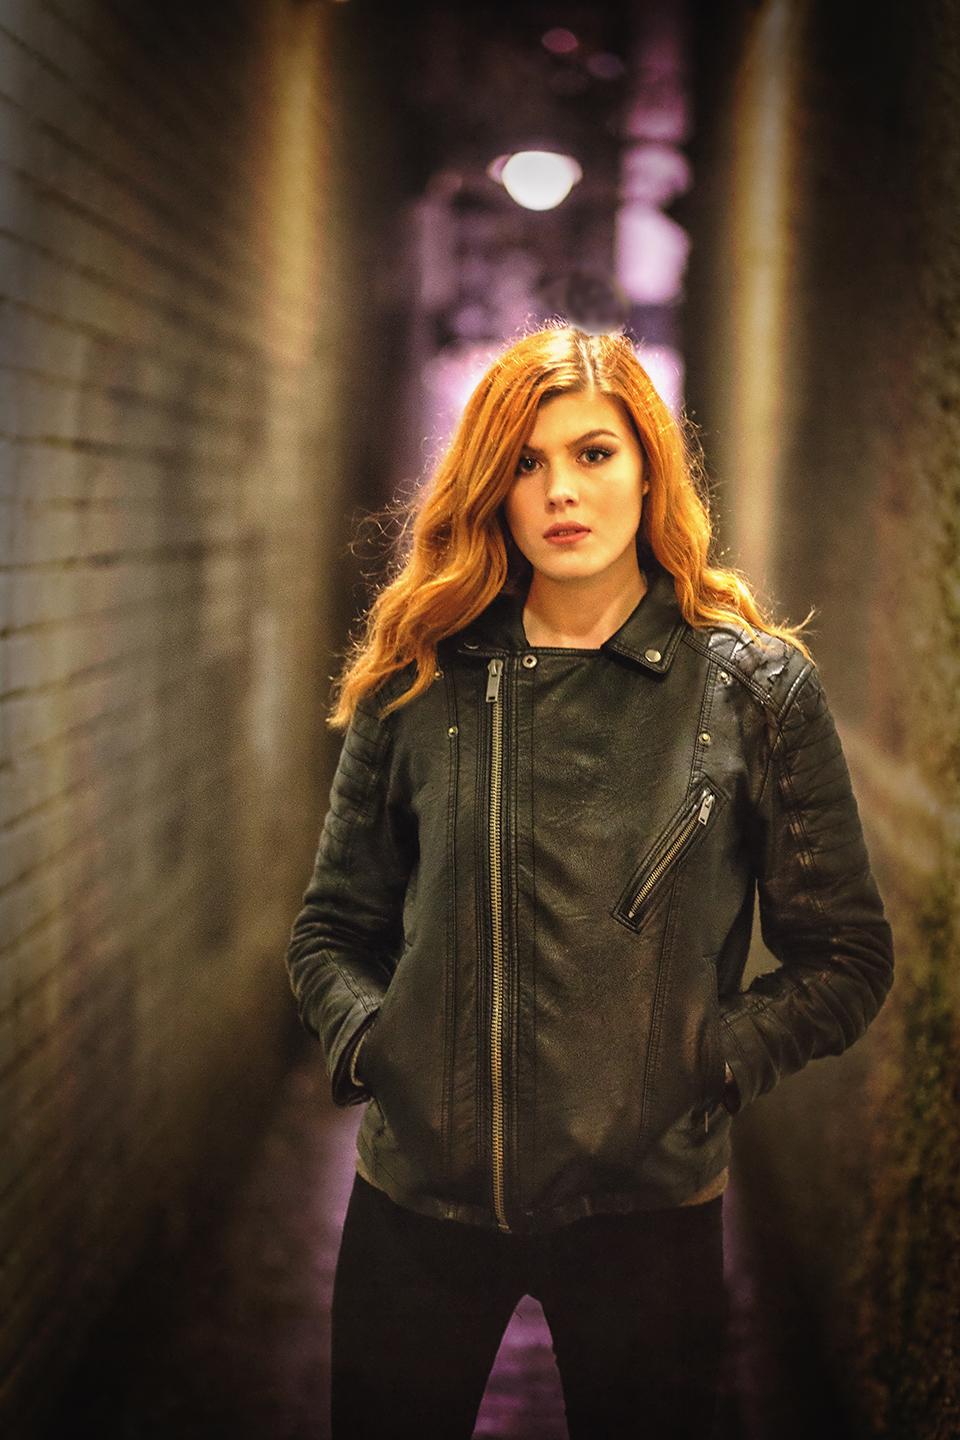 Enya in leather jacket in alley at night